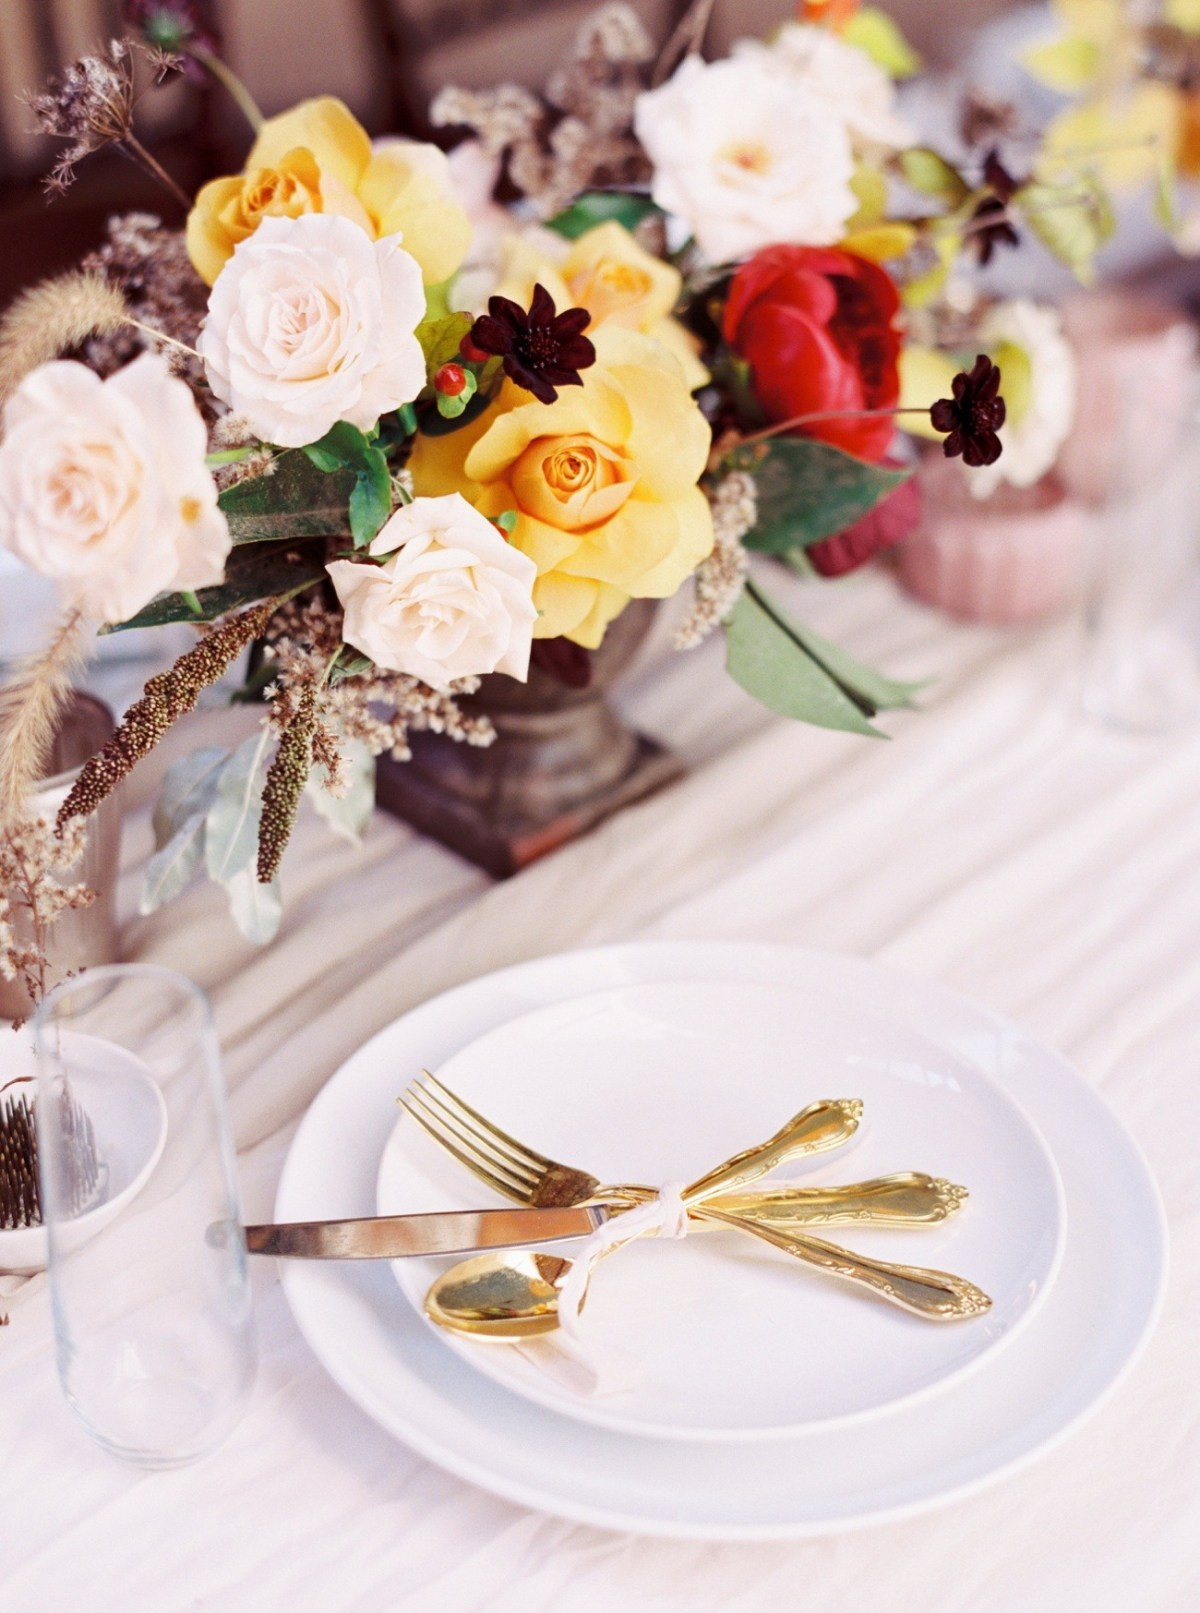 Faith + Isaac   Elegant and Classic Autumn Wedding   Roots Floral Design